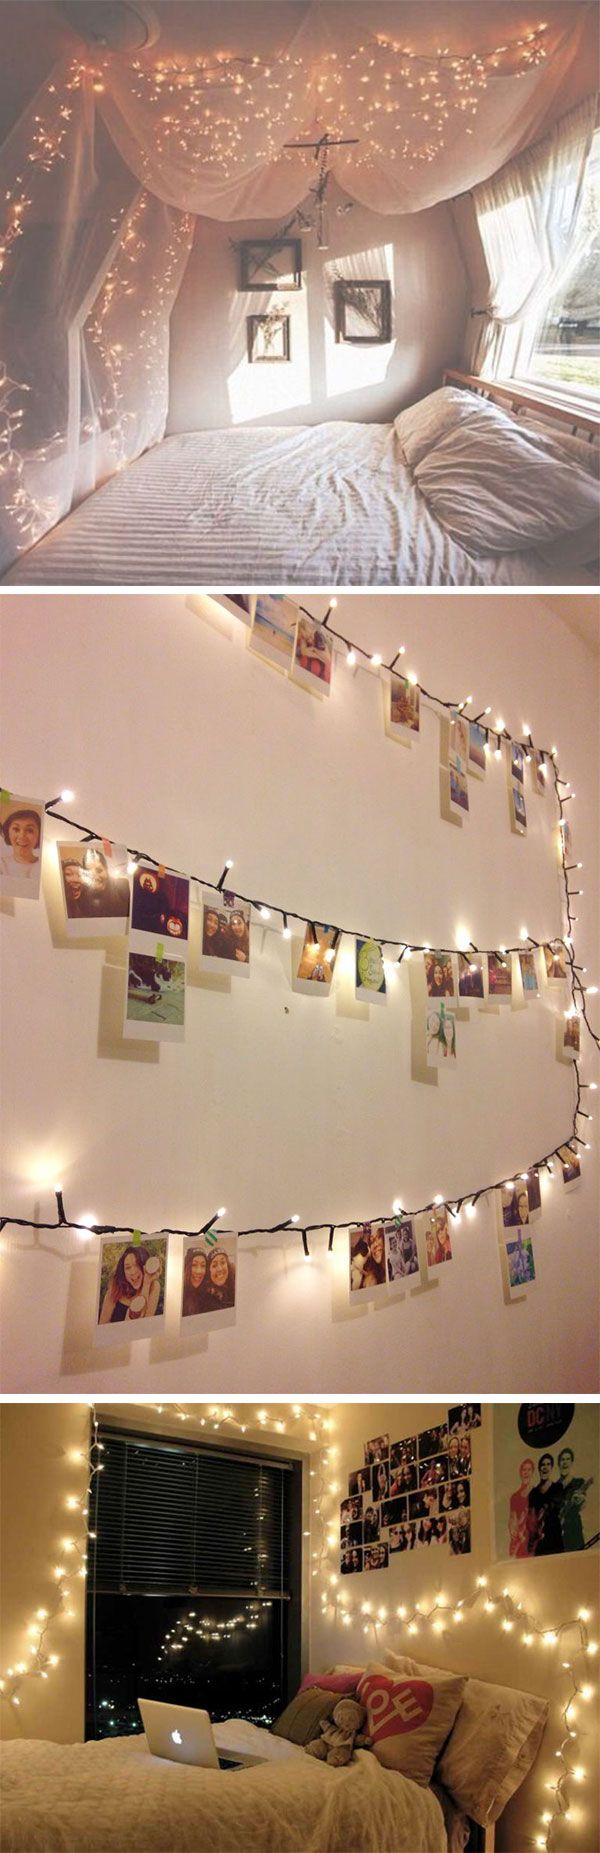 13 ways to use fairy lights to make your home look magical room decor diy